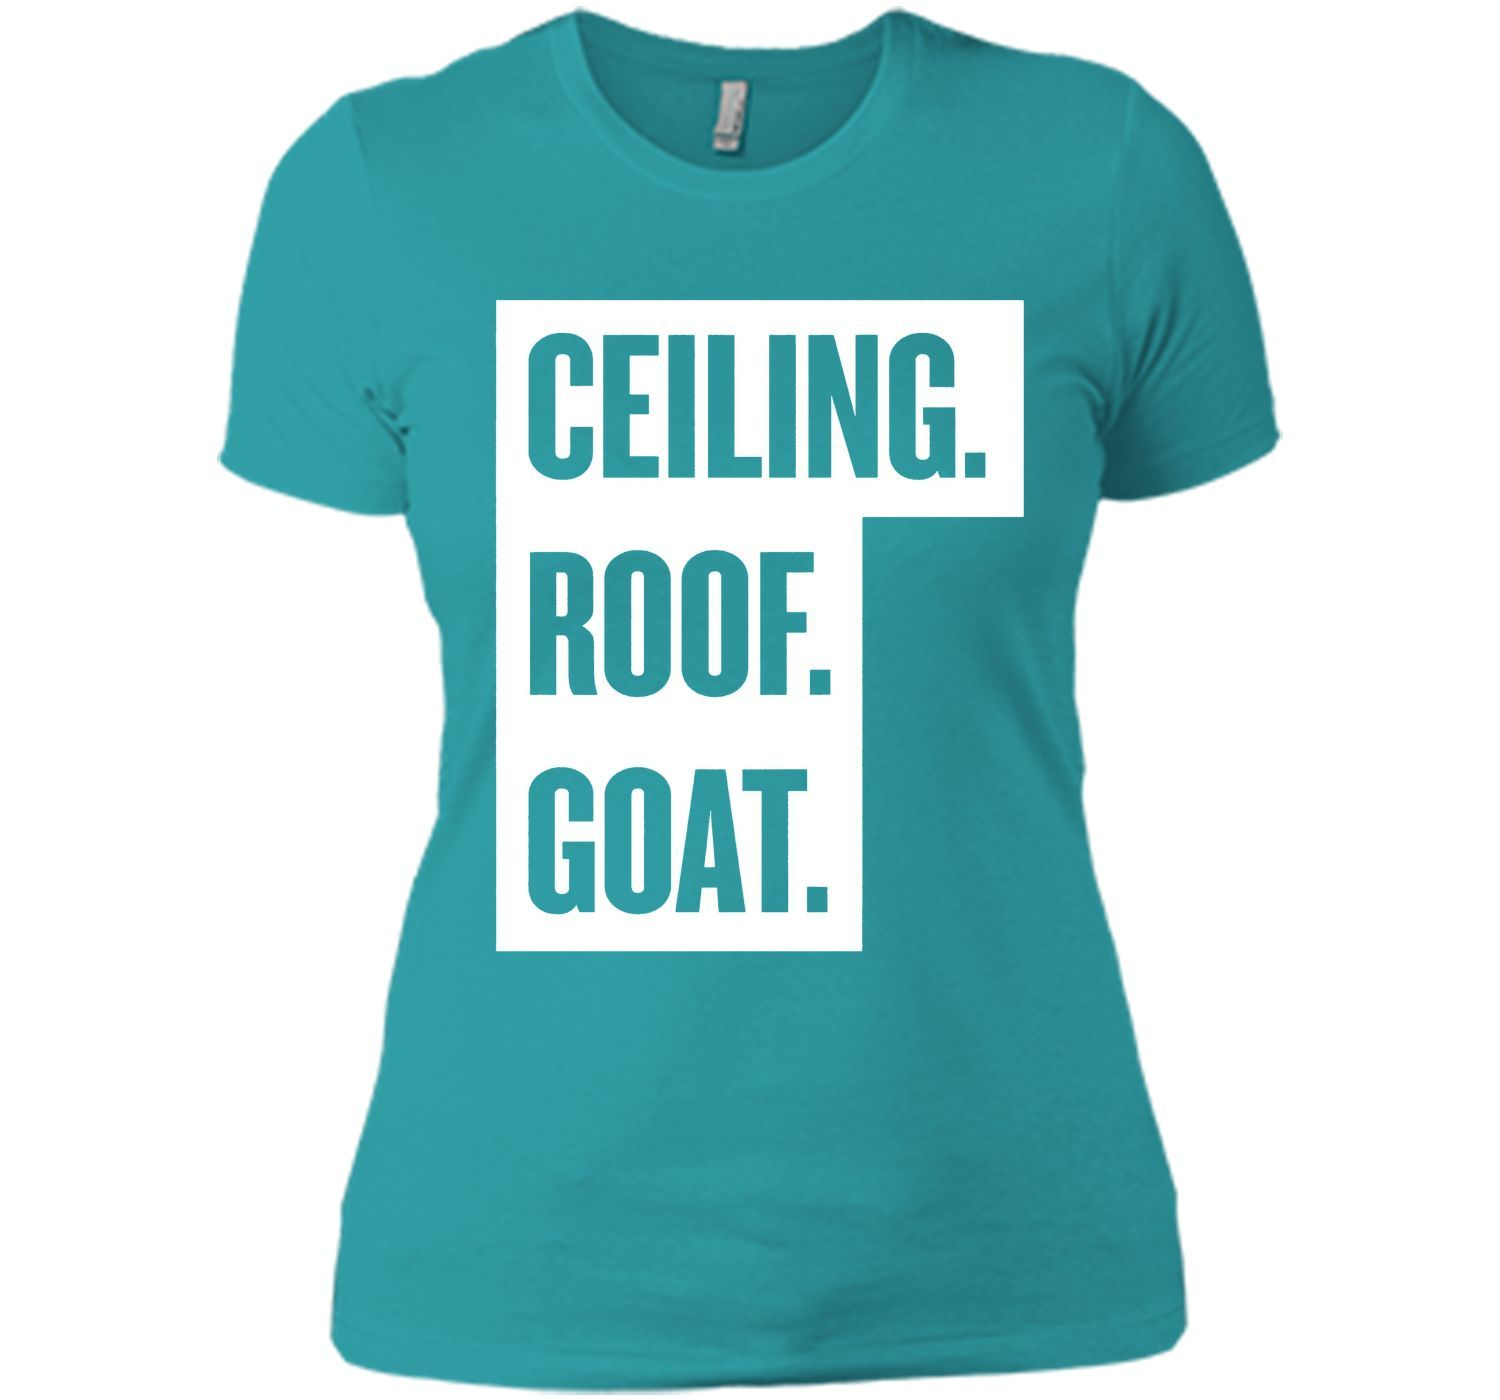 Ceiling Roof Goat T Shirt | Products | Pinterest | Goats, Ceilings ...